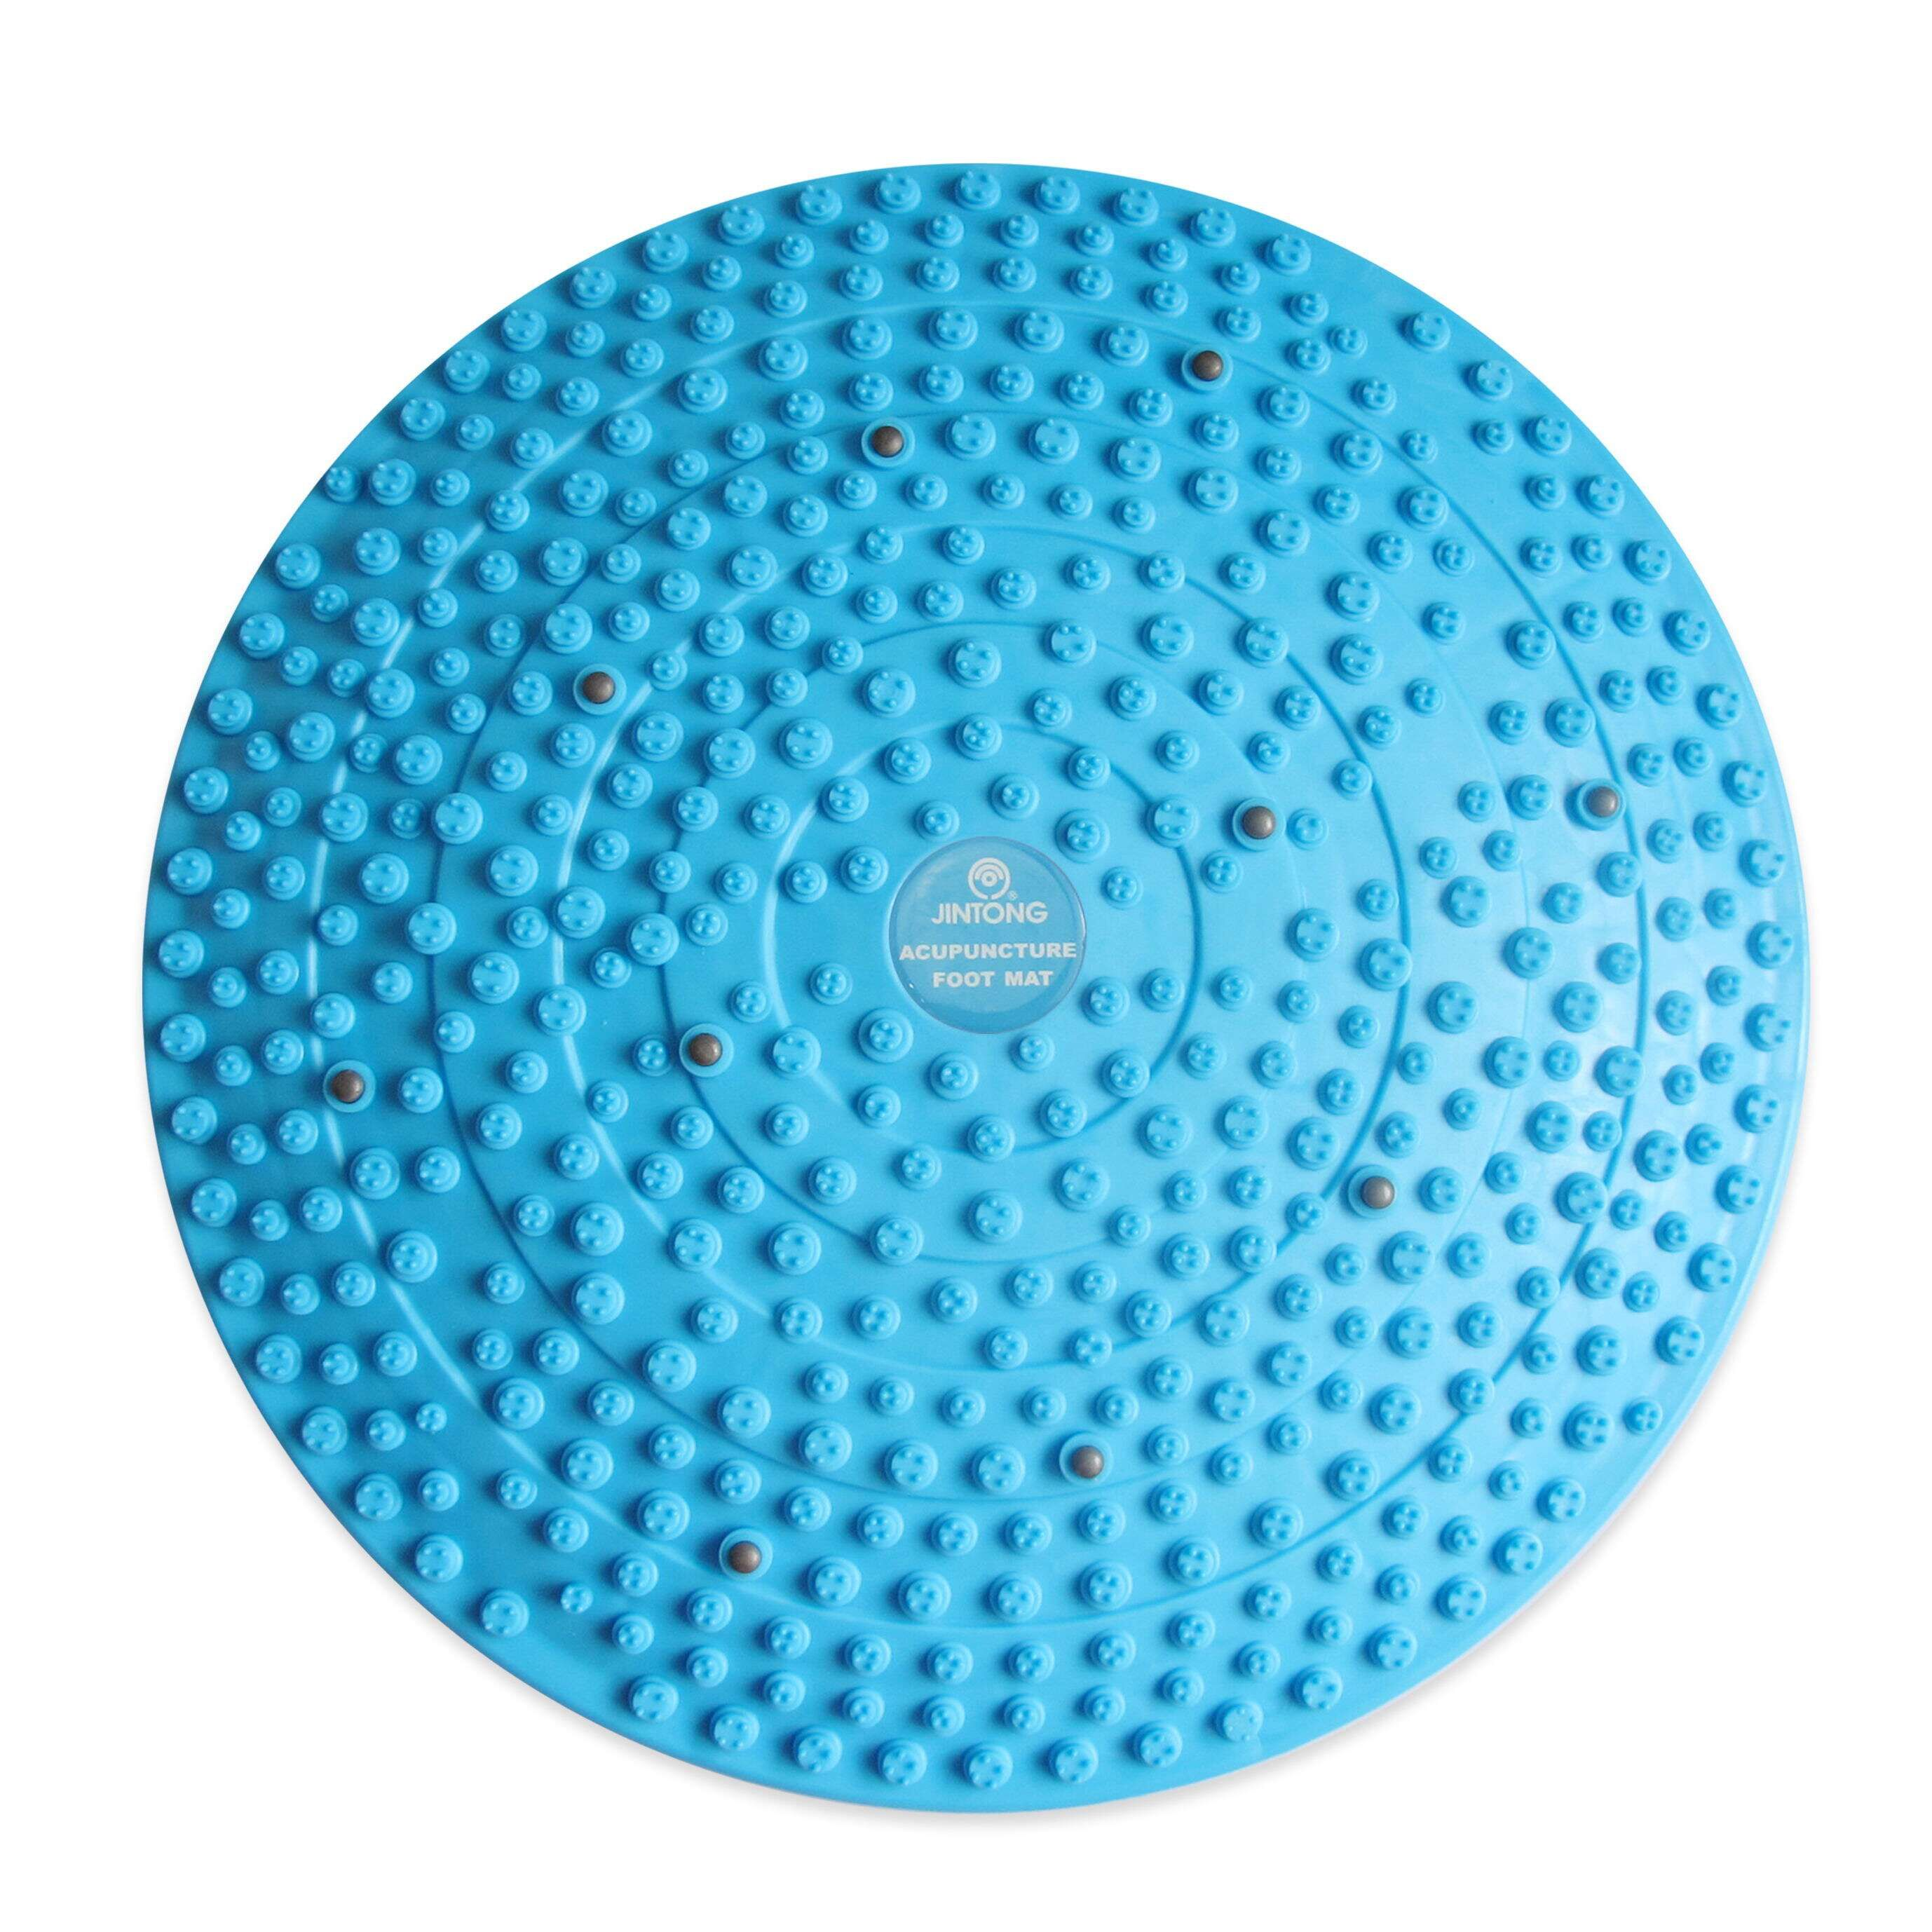 Foot Acupuncture Mat Available In 3 Diff Colors